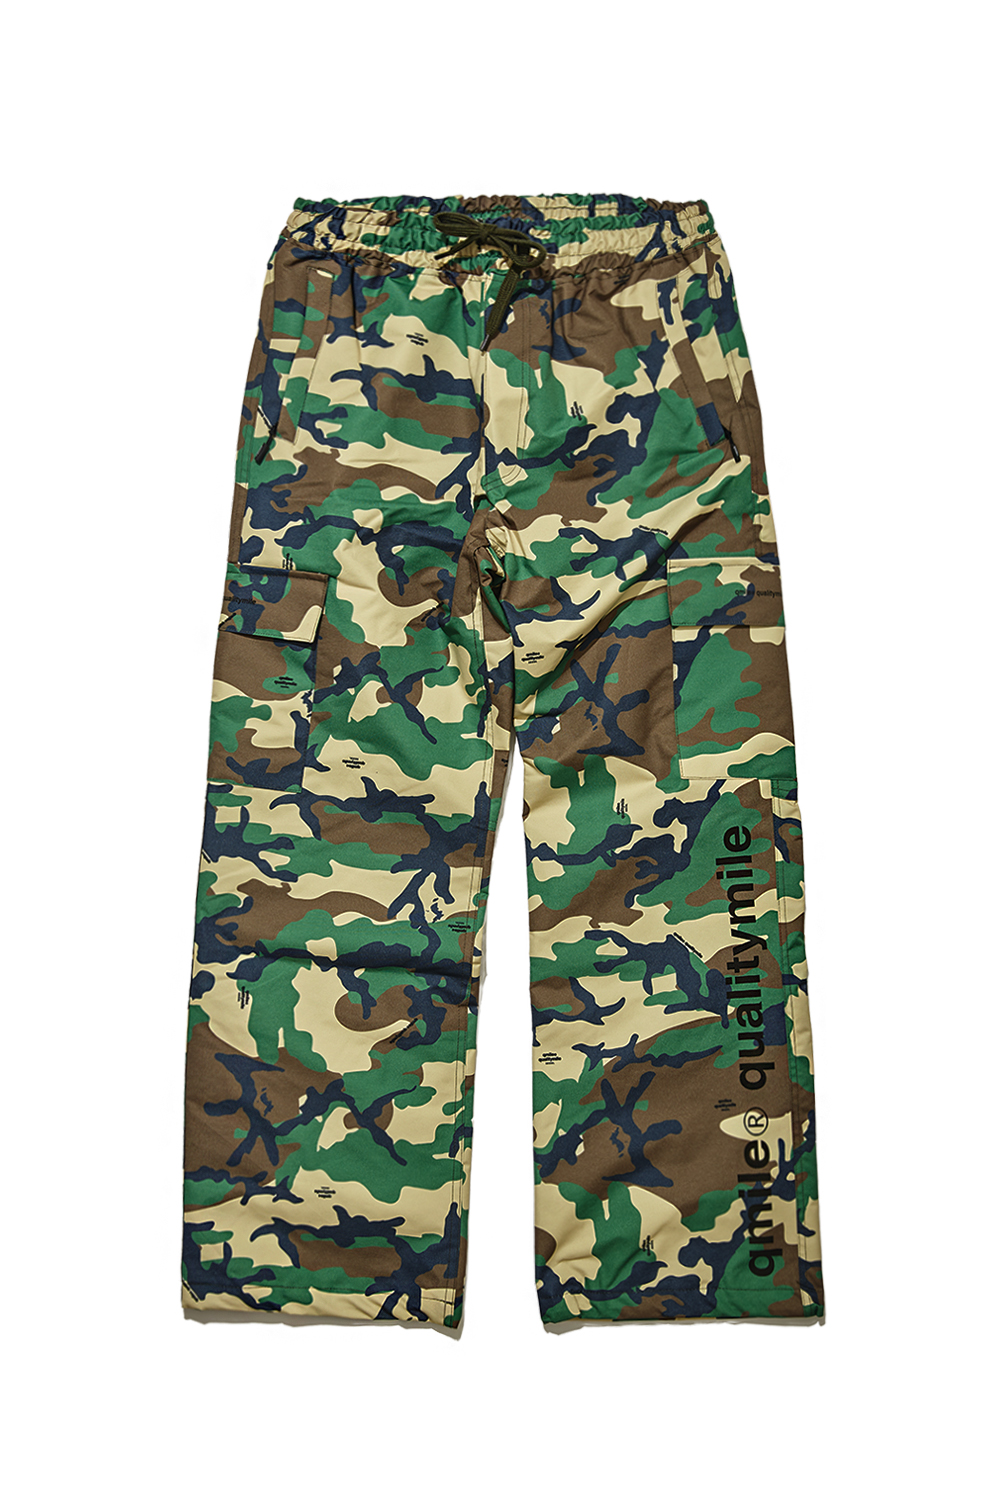 CARGO PANTS | GREEN CAMOUFLAGE